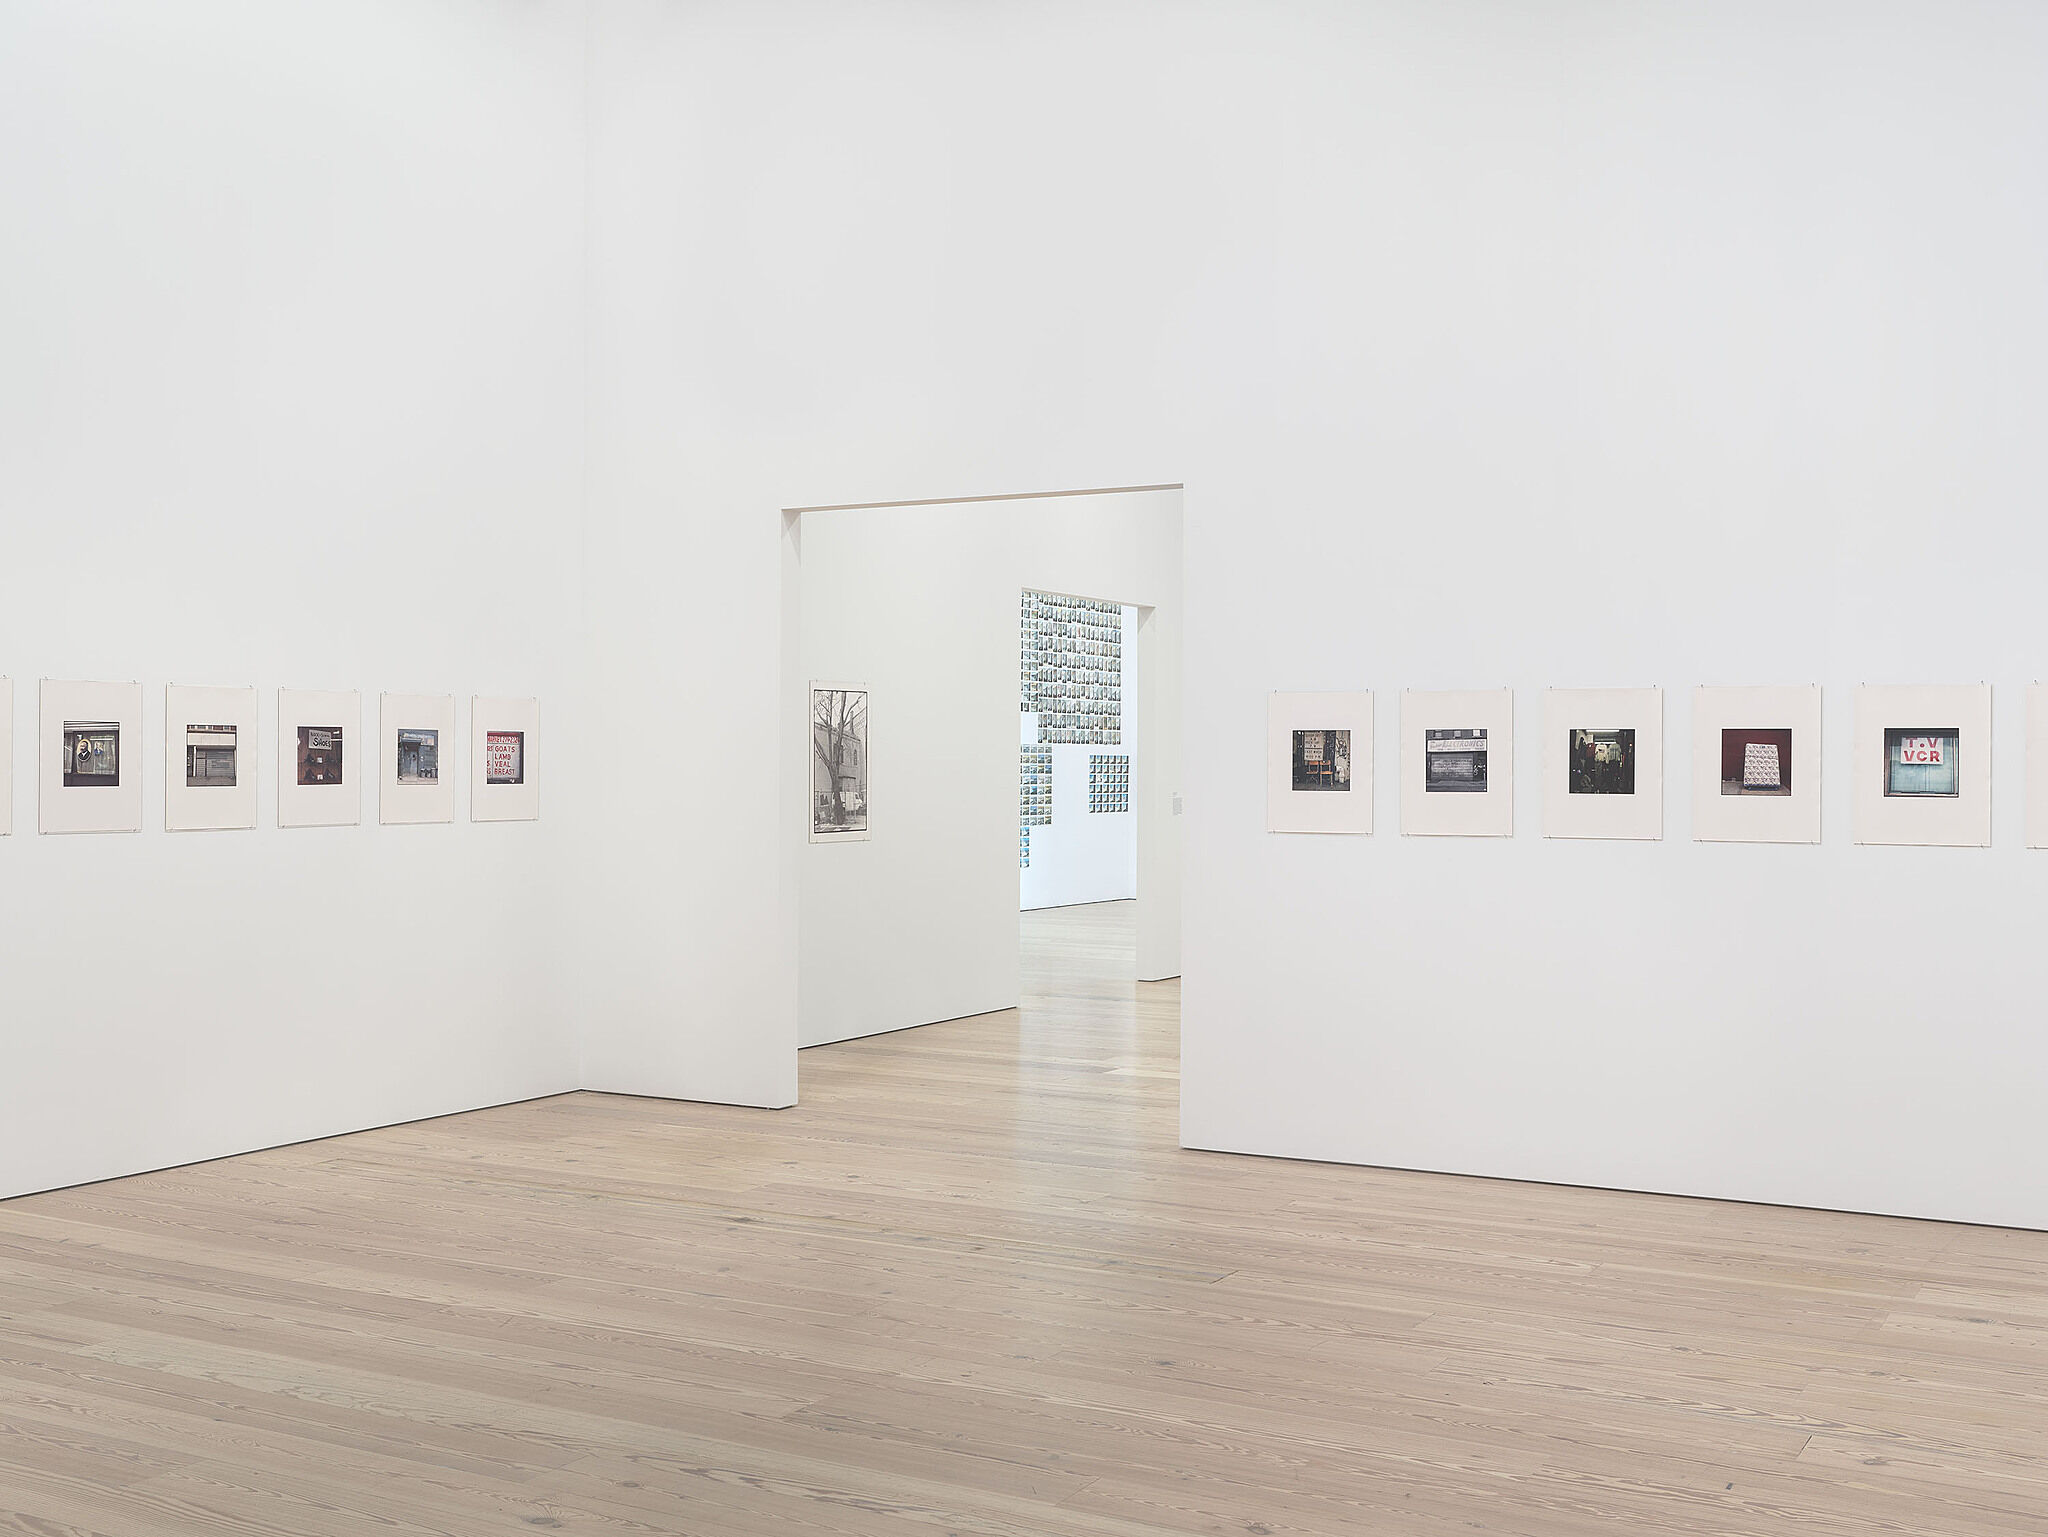 A photo of the Whitney galleries with various photos on the walls.